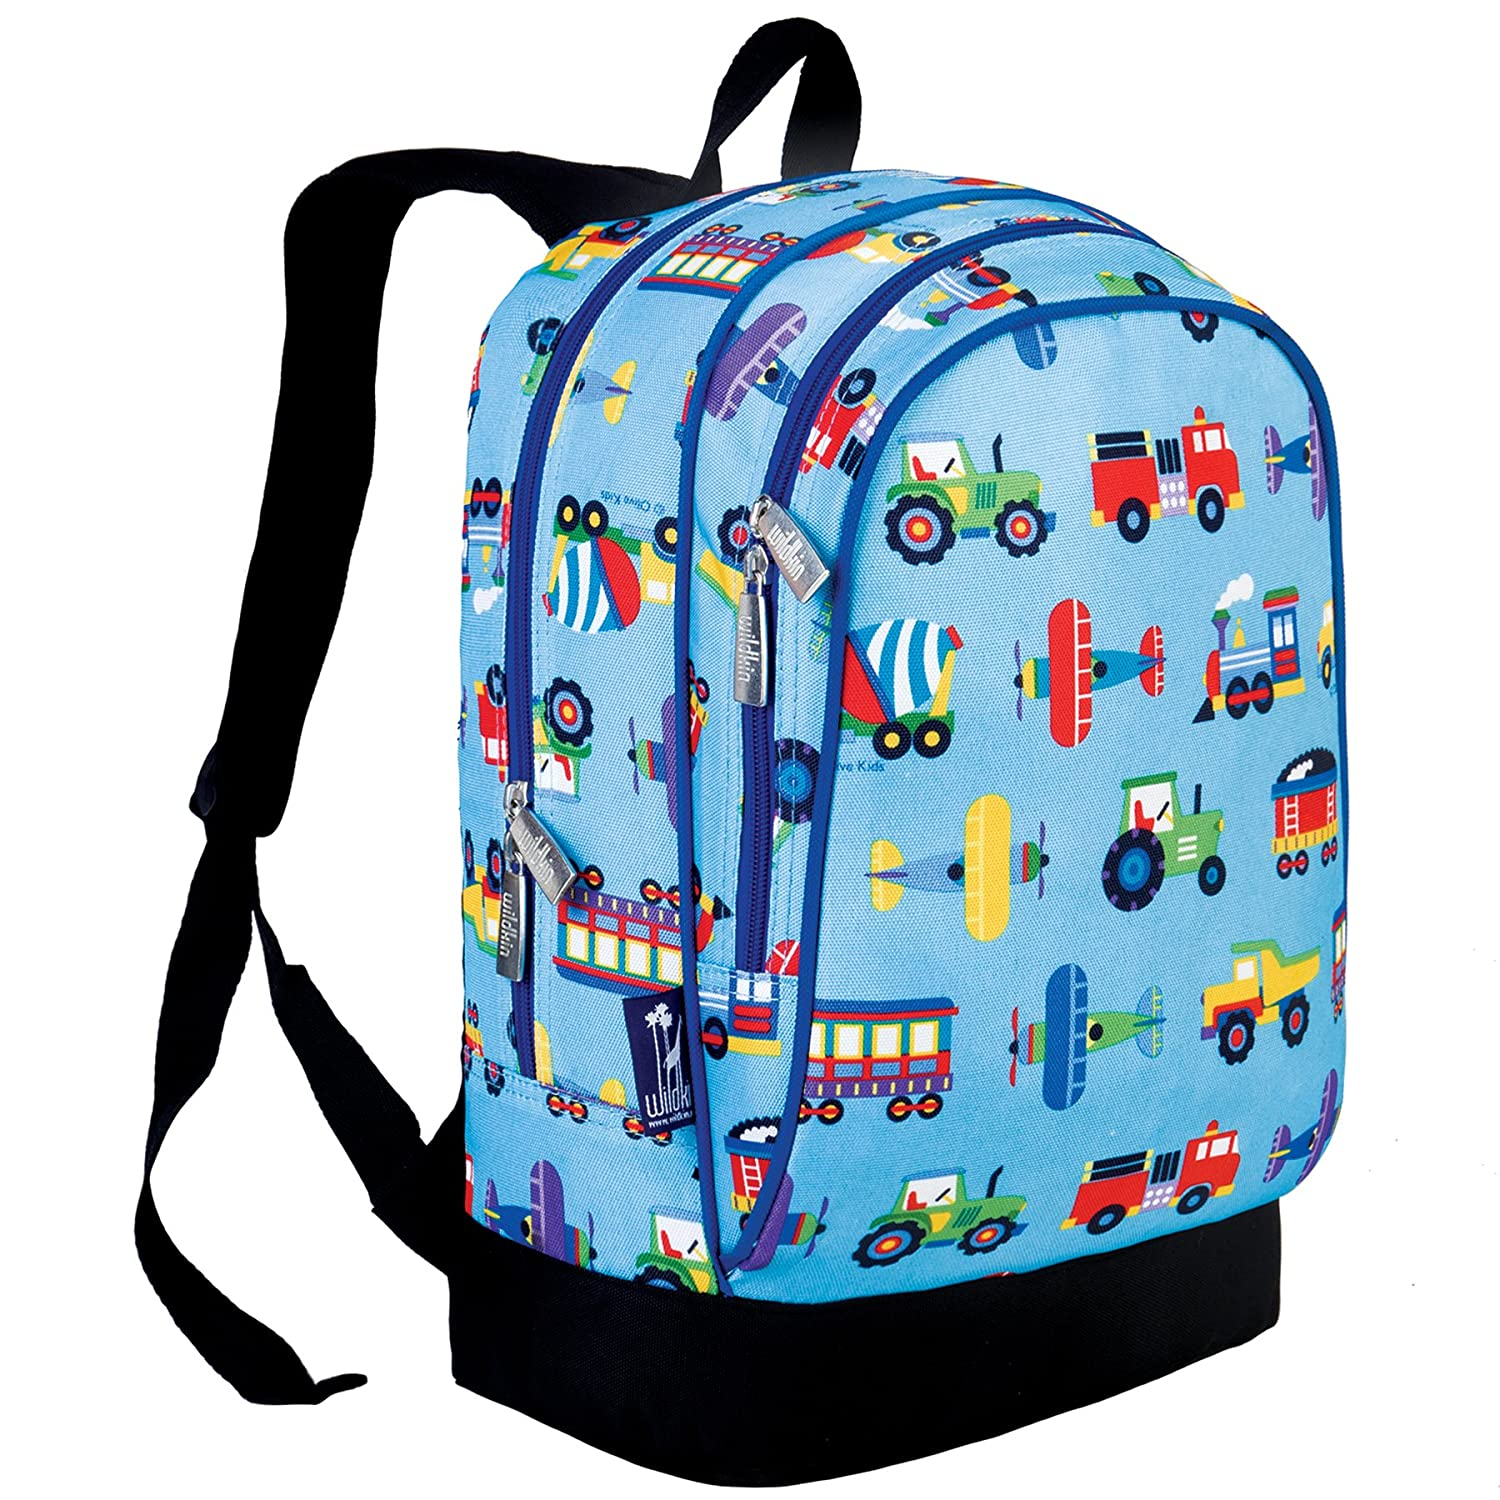 Amazon.com: Olive Kids Wild Animals Sidekick Backpack: Toys & Games